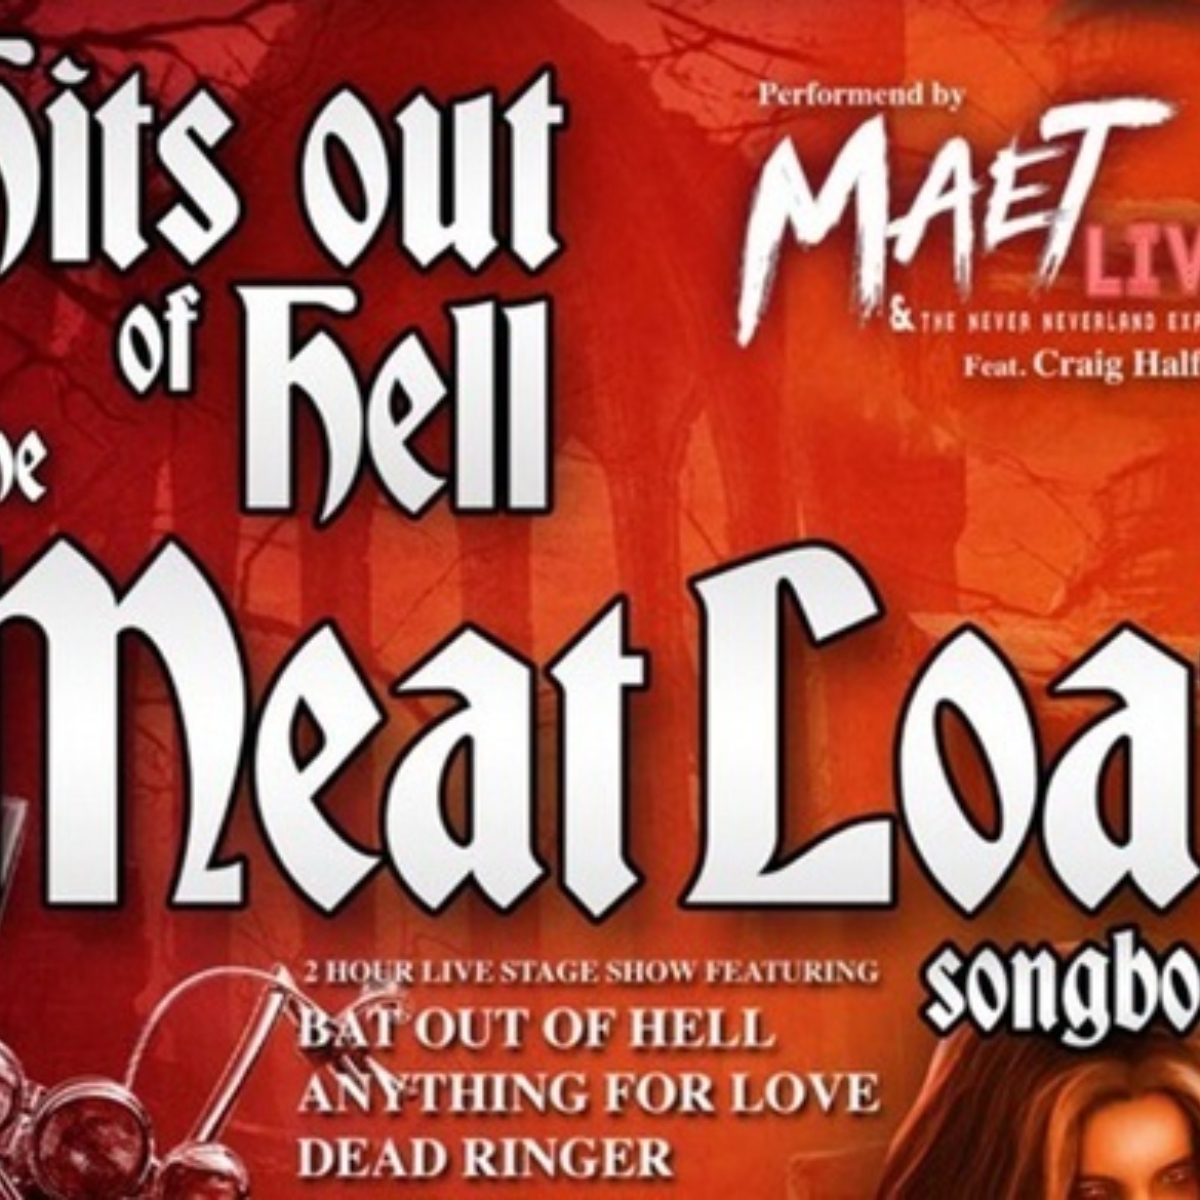 Hits Out Of Hell – The Meat Loaf Songbook Images